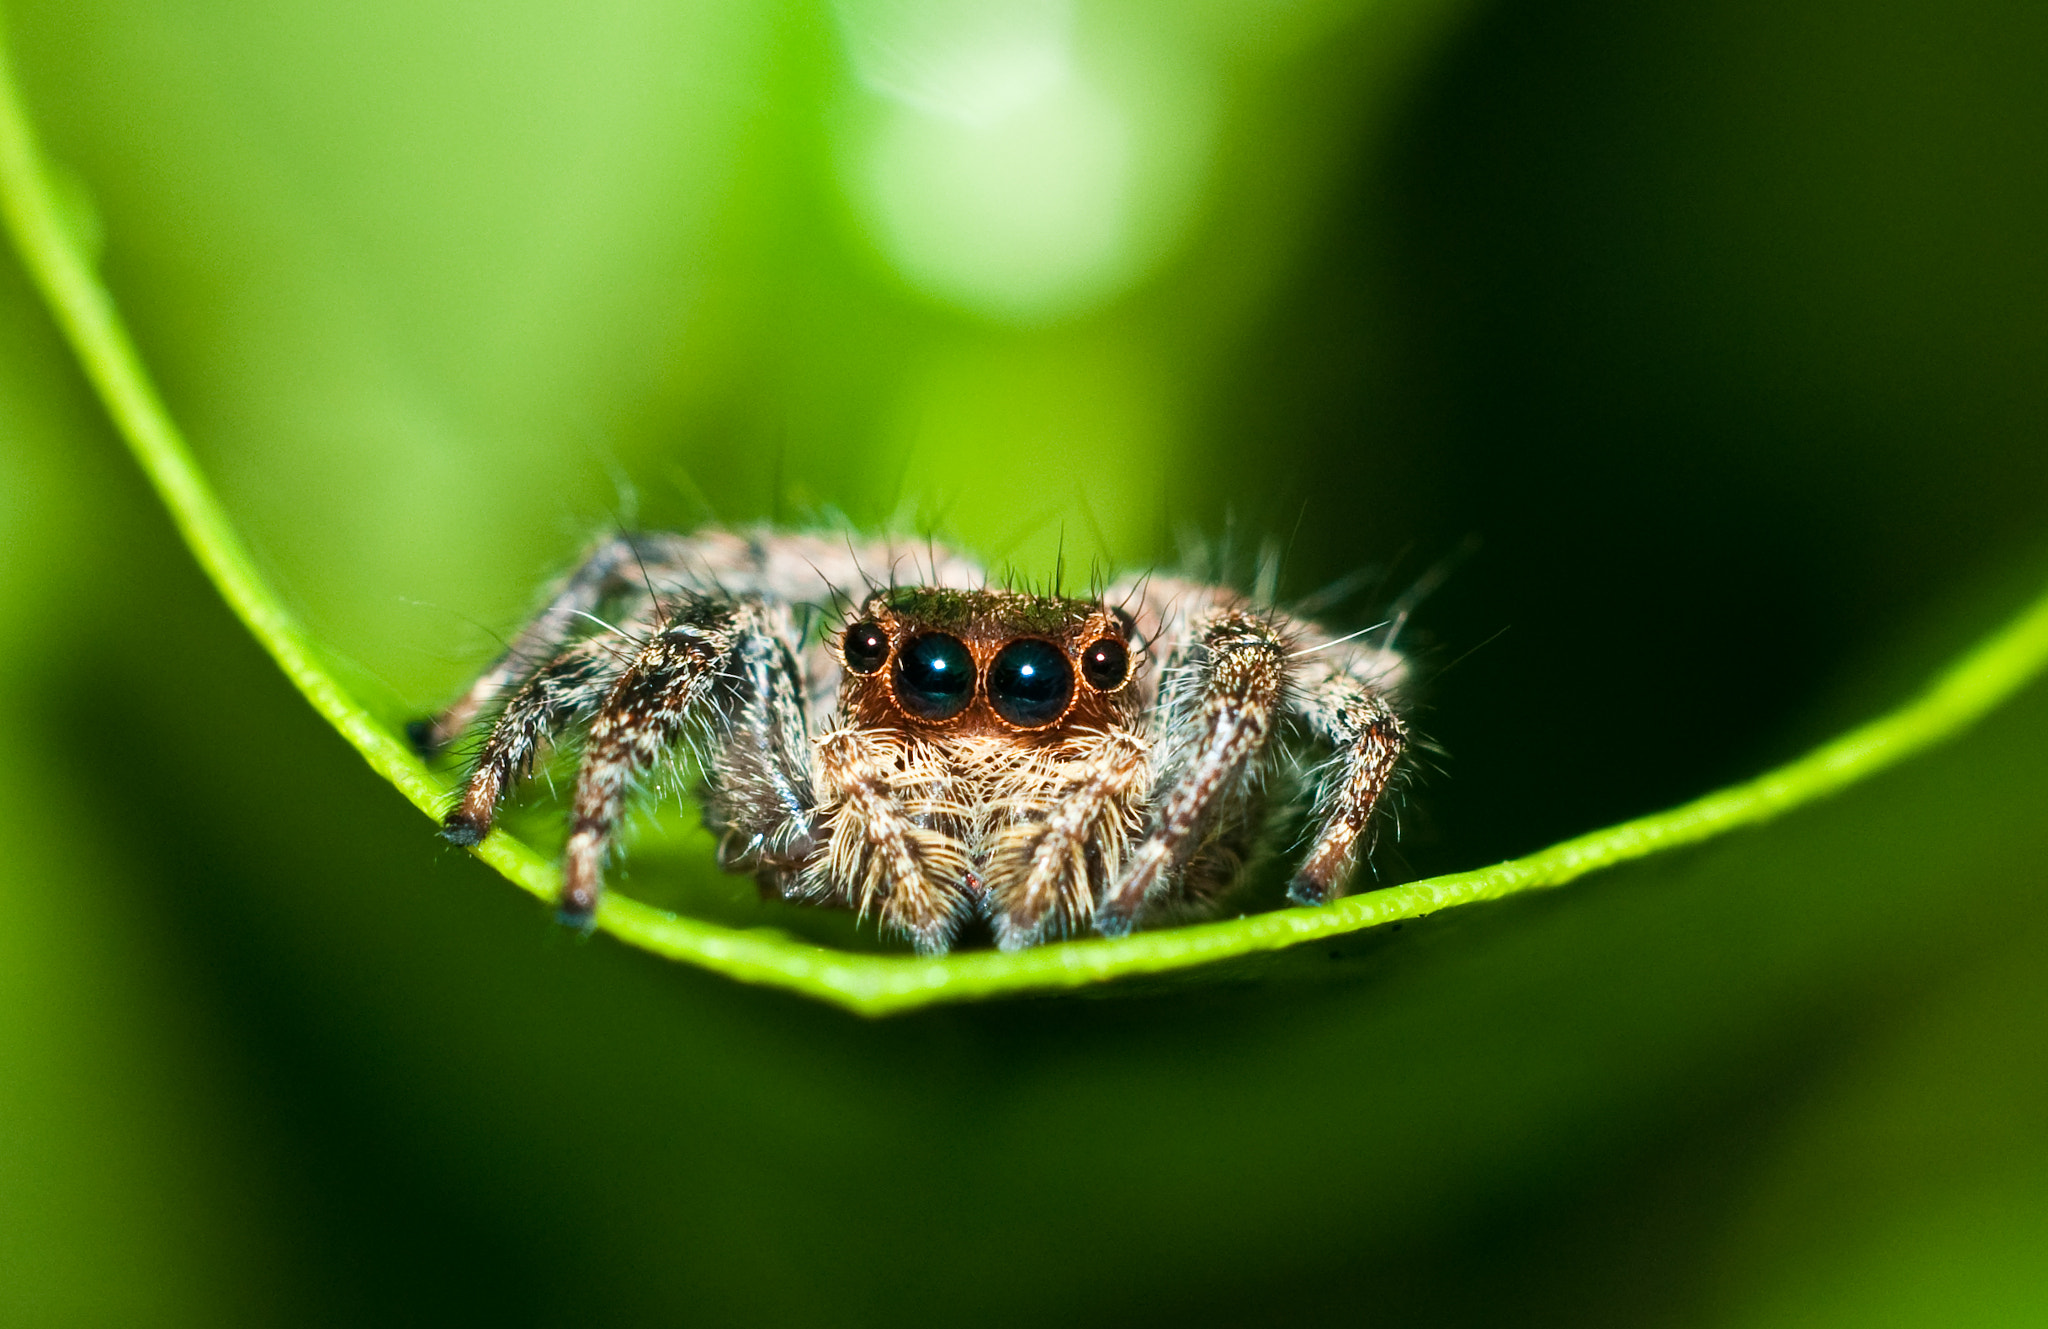 Photograph Jumping Spider by Arif Othman on 500px